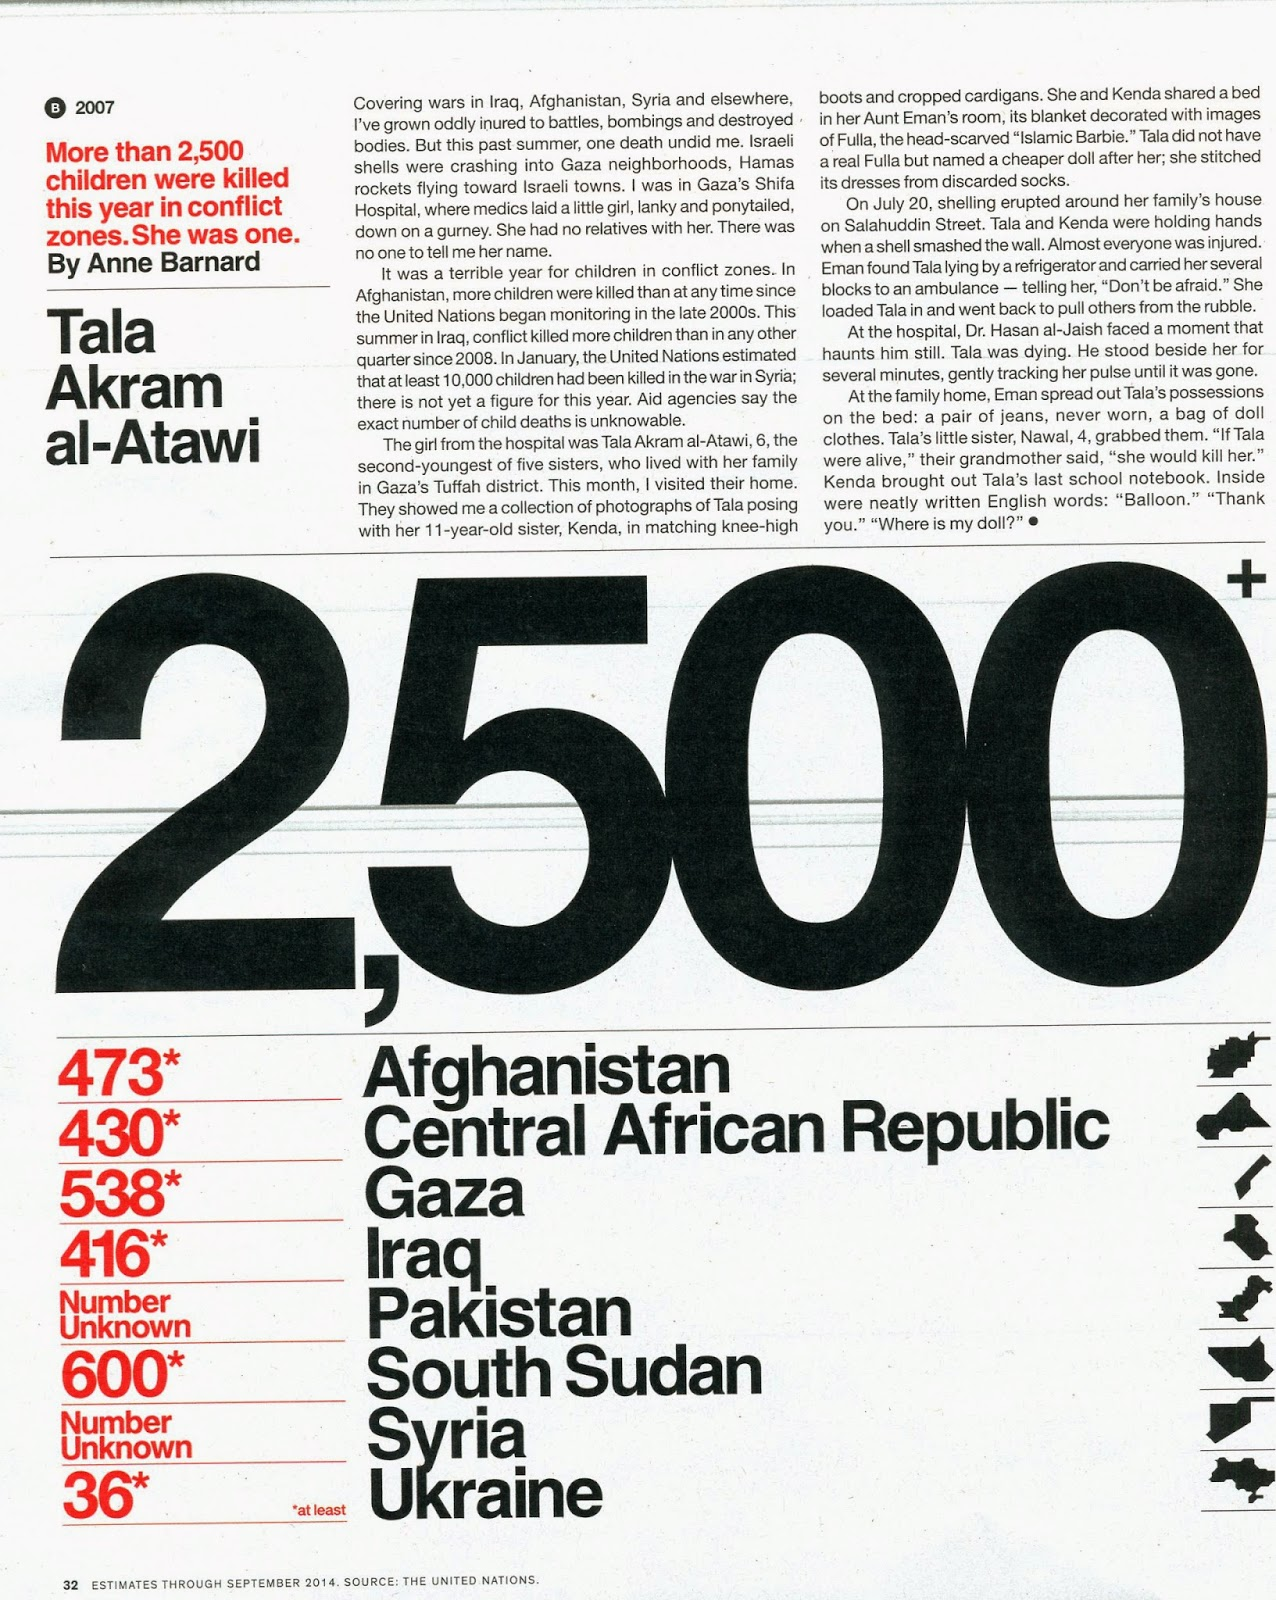 2014 elder of ziyon news from looking at this page one would get the impression that except for south sudan more children were killed in gaza than in any other conflict this year